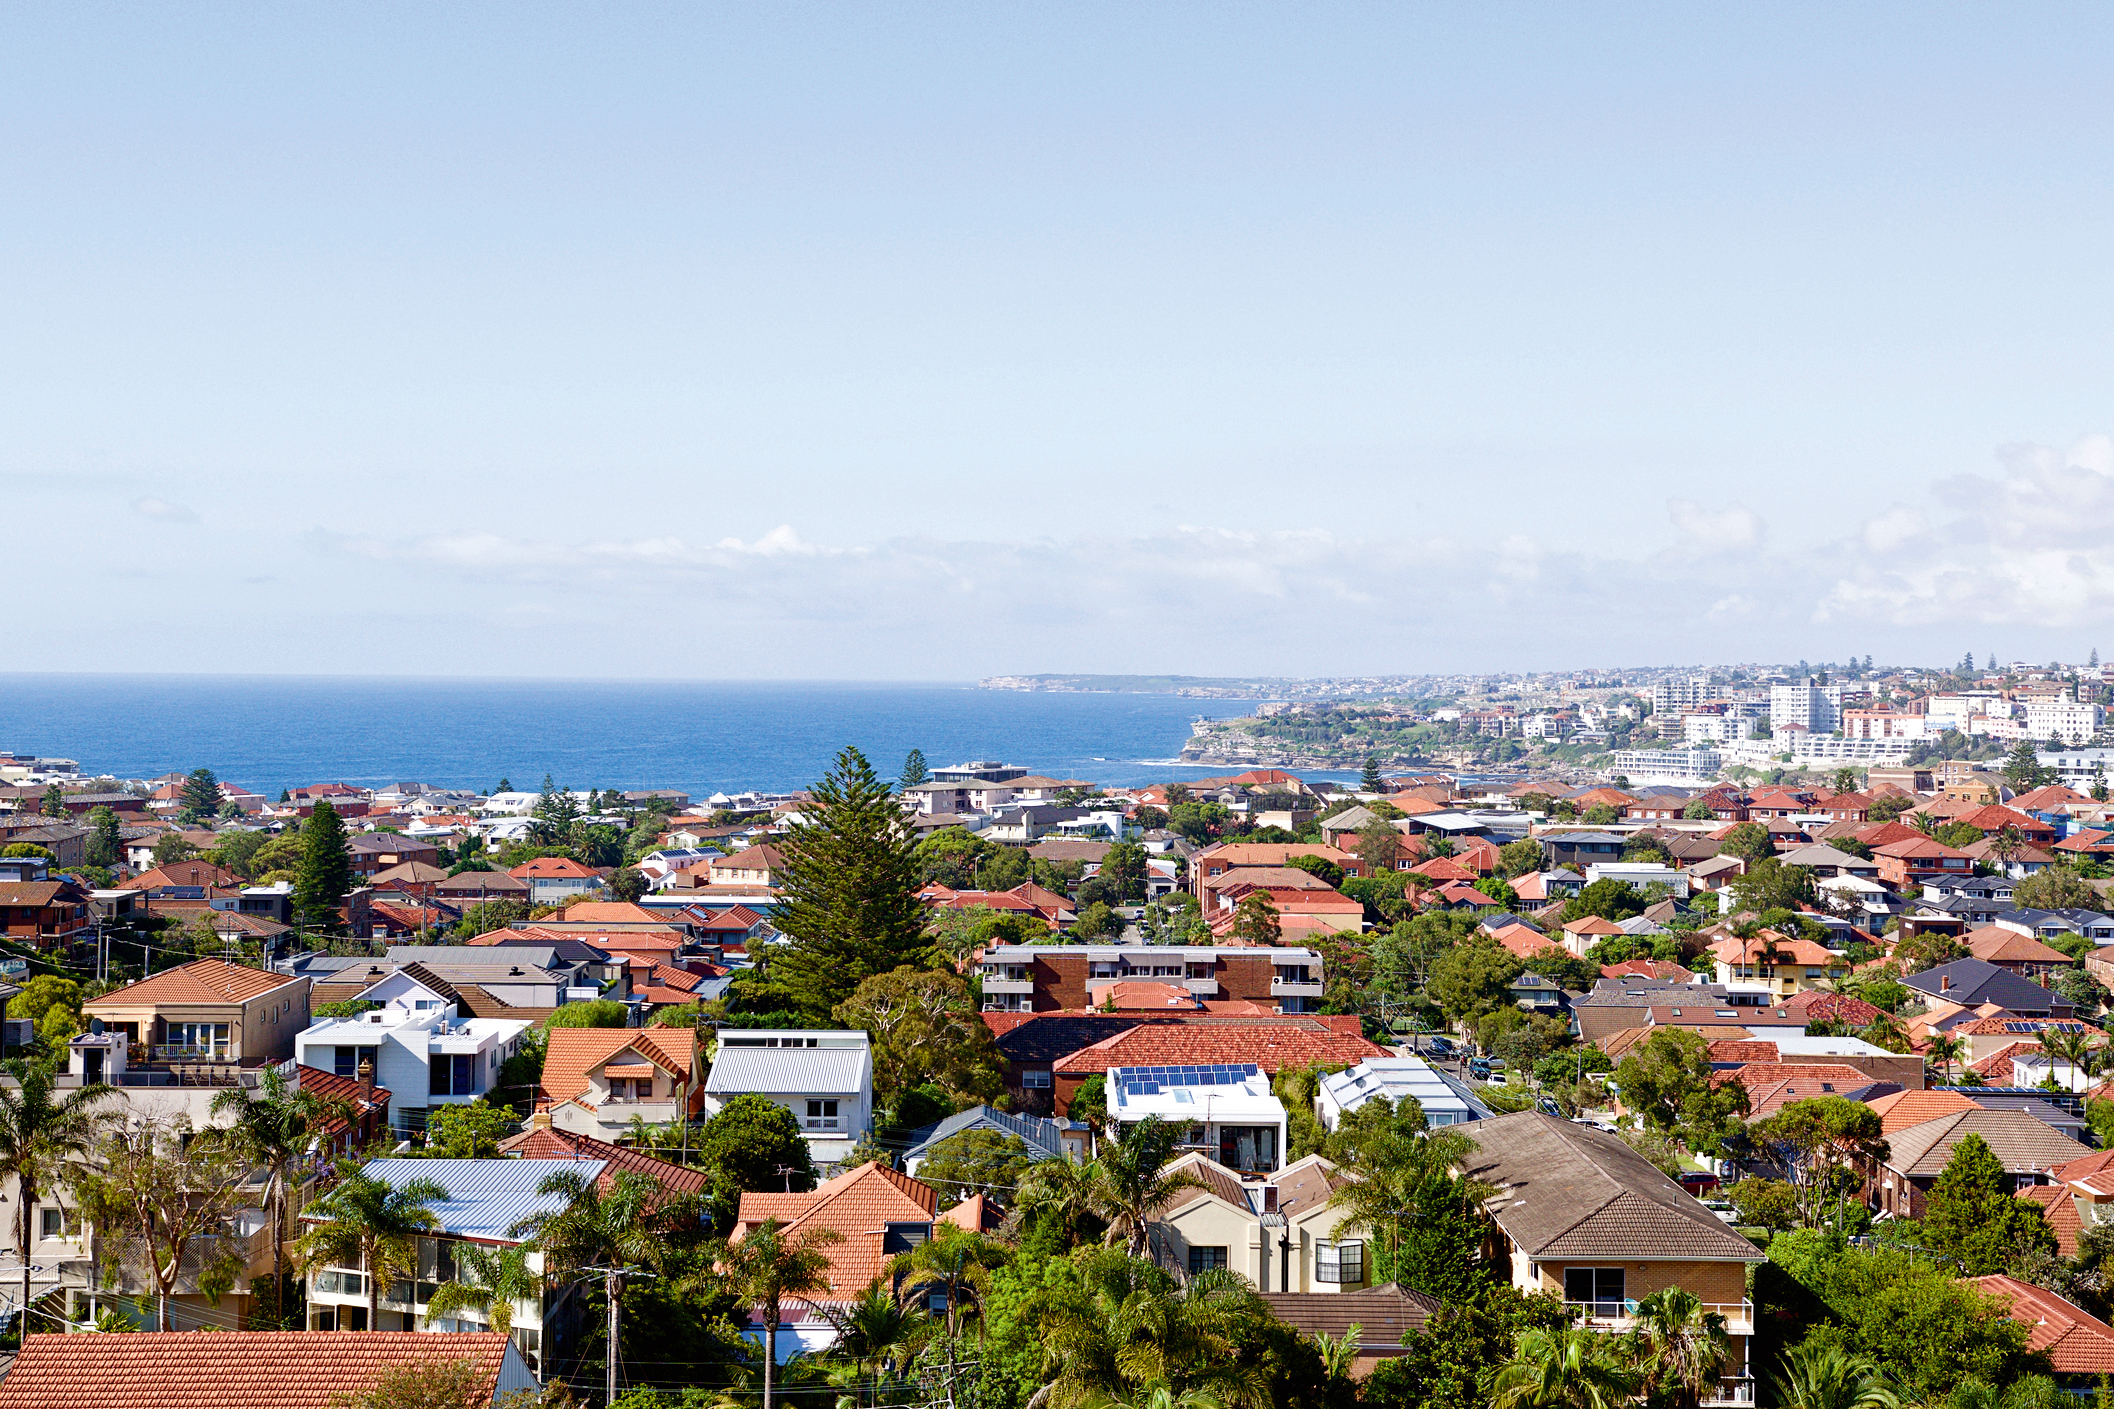 Houses in the eastern suburbs of Sydney